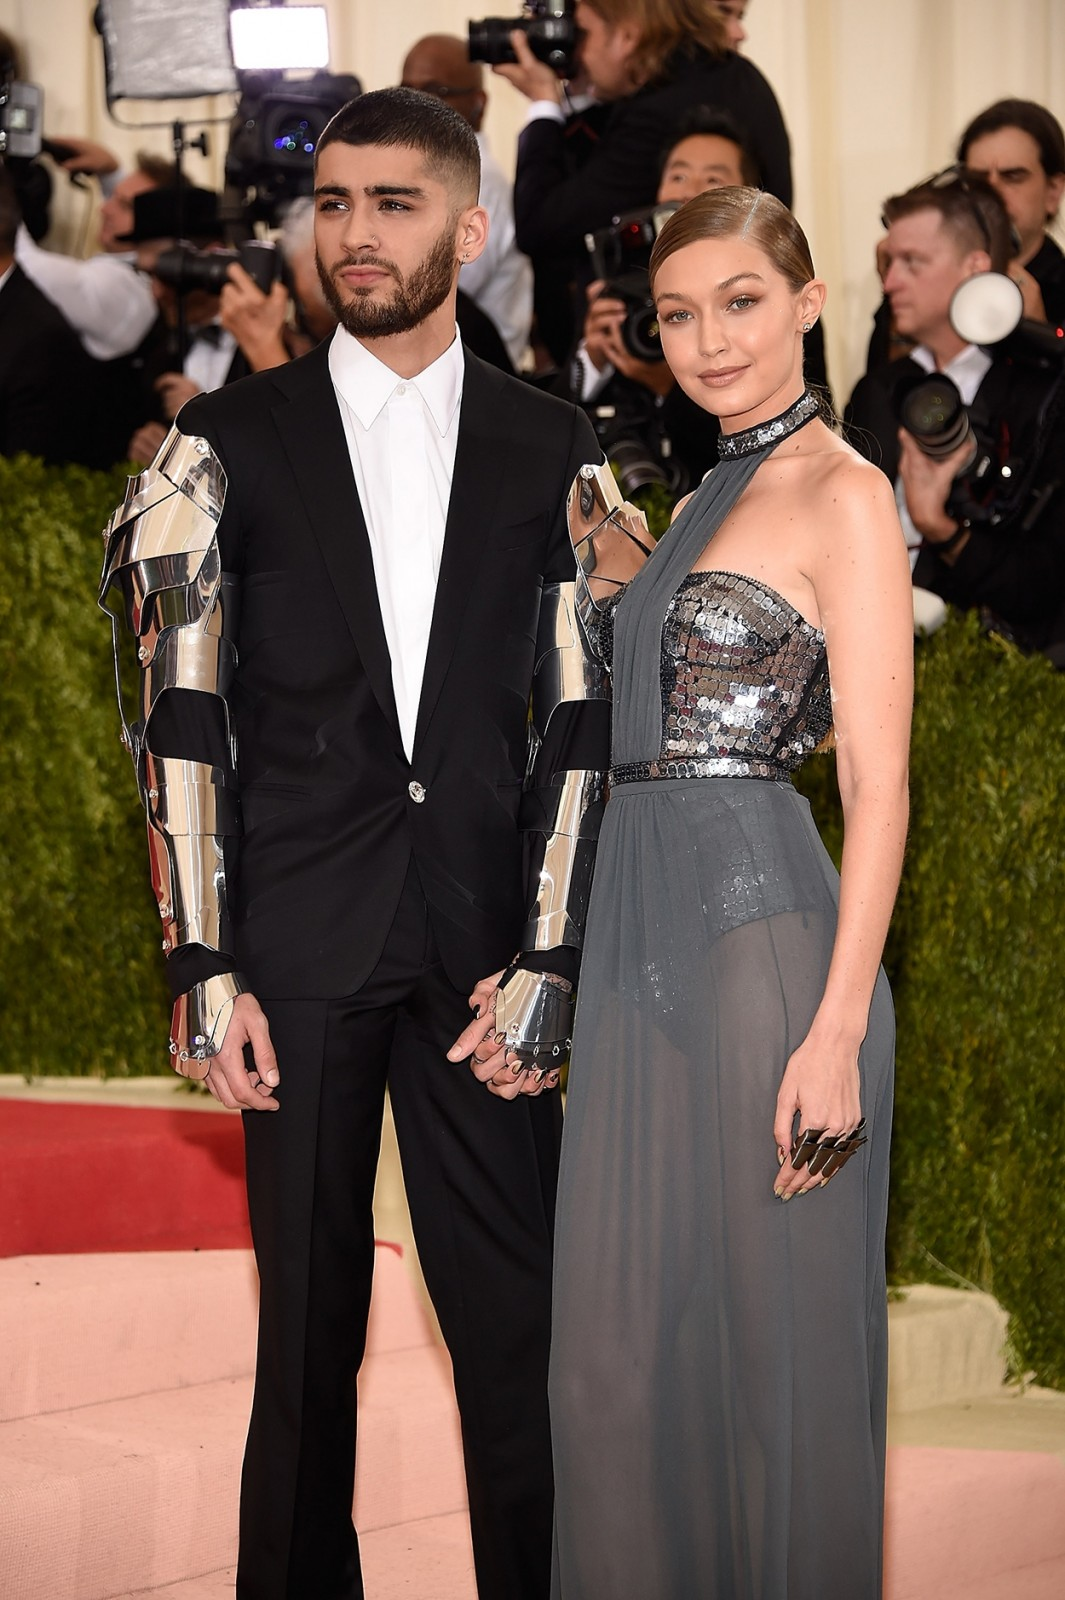 Zayn-Malik-and-Gigi-Hadid-Met-gala-2016-billboard-1250